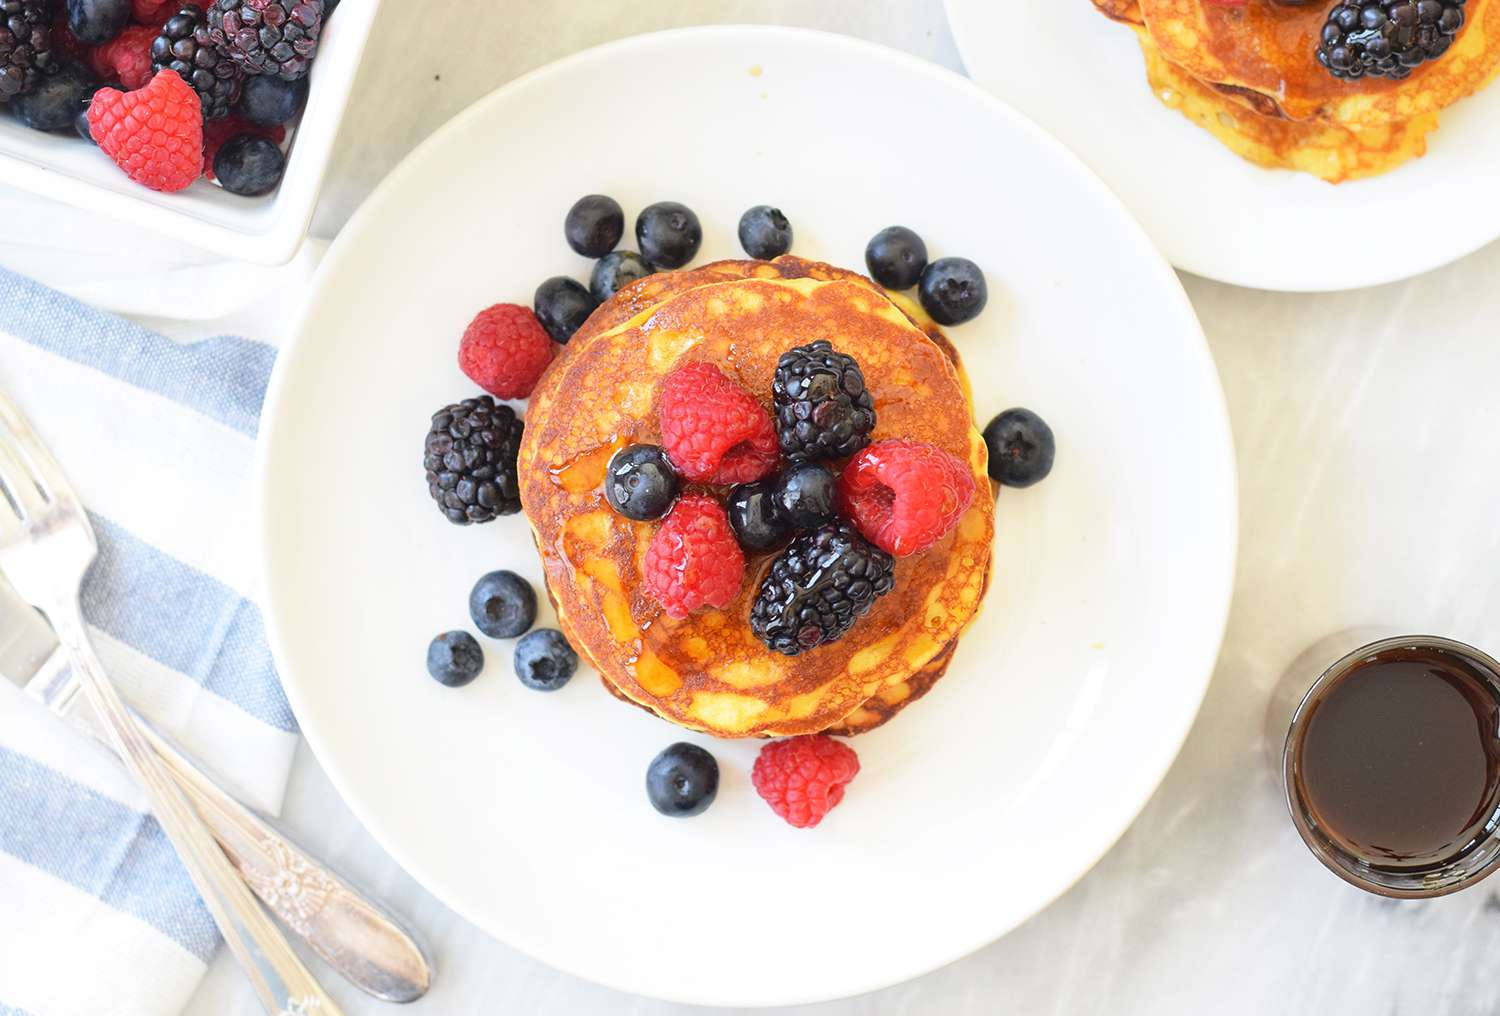 Coconut flour pancakes on a serving plate with fresh berries